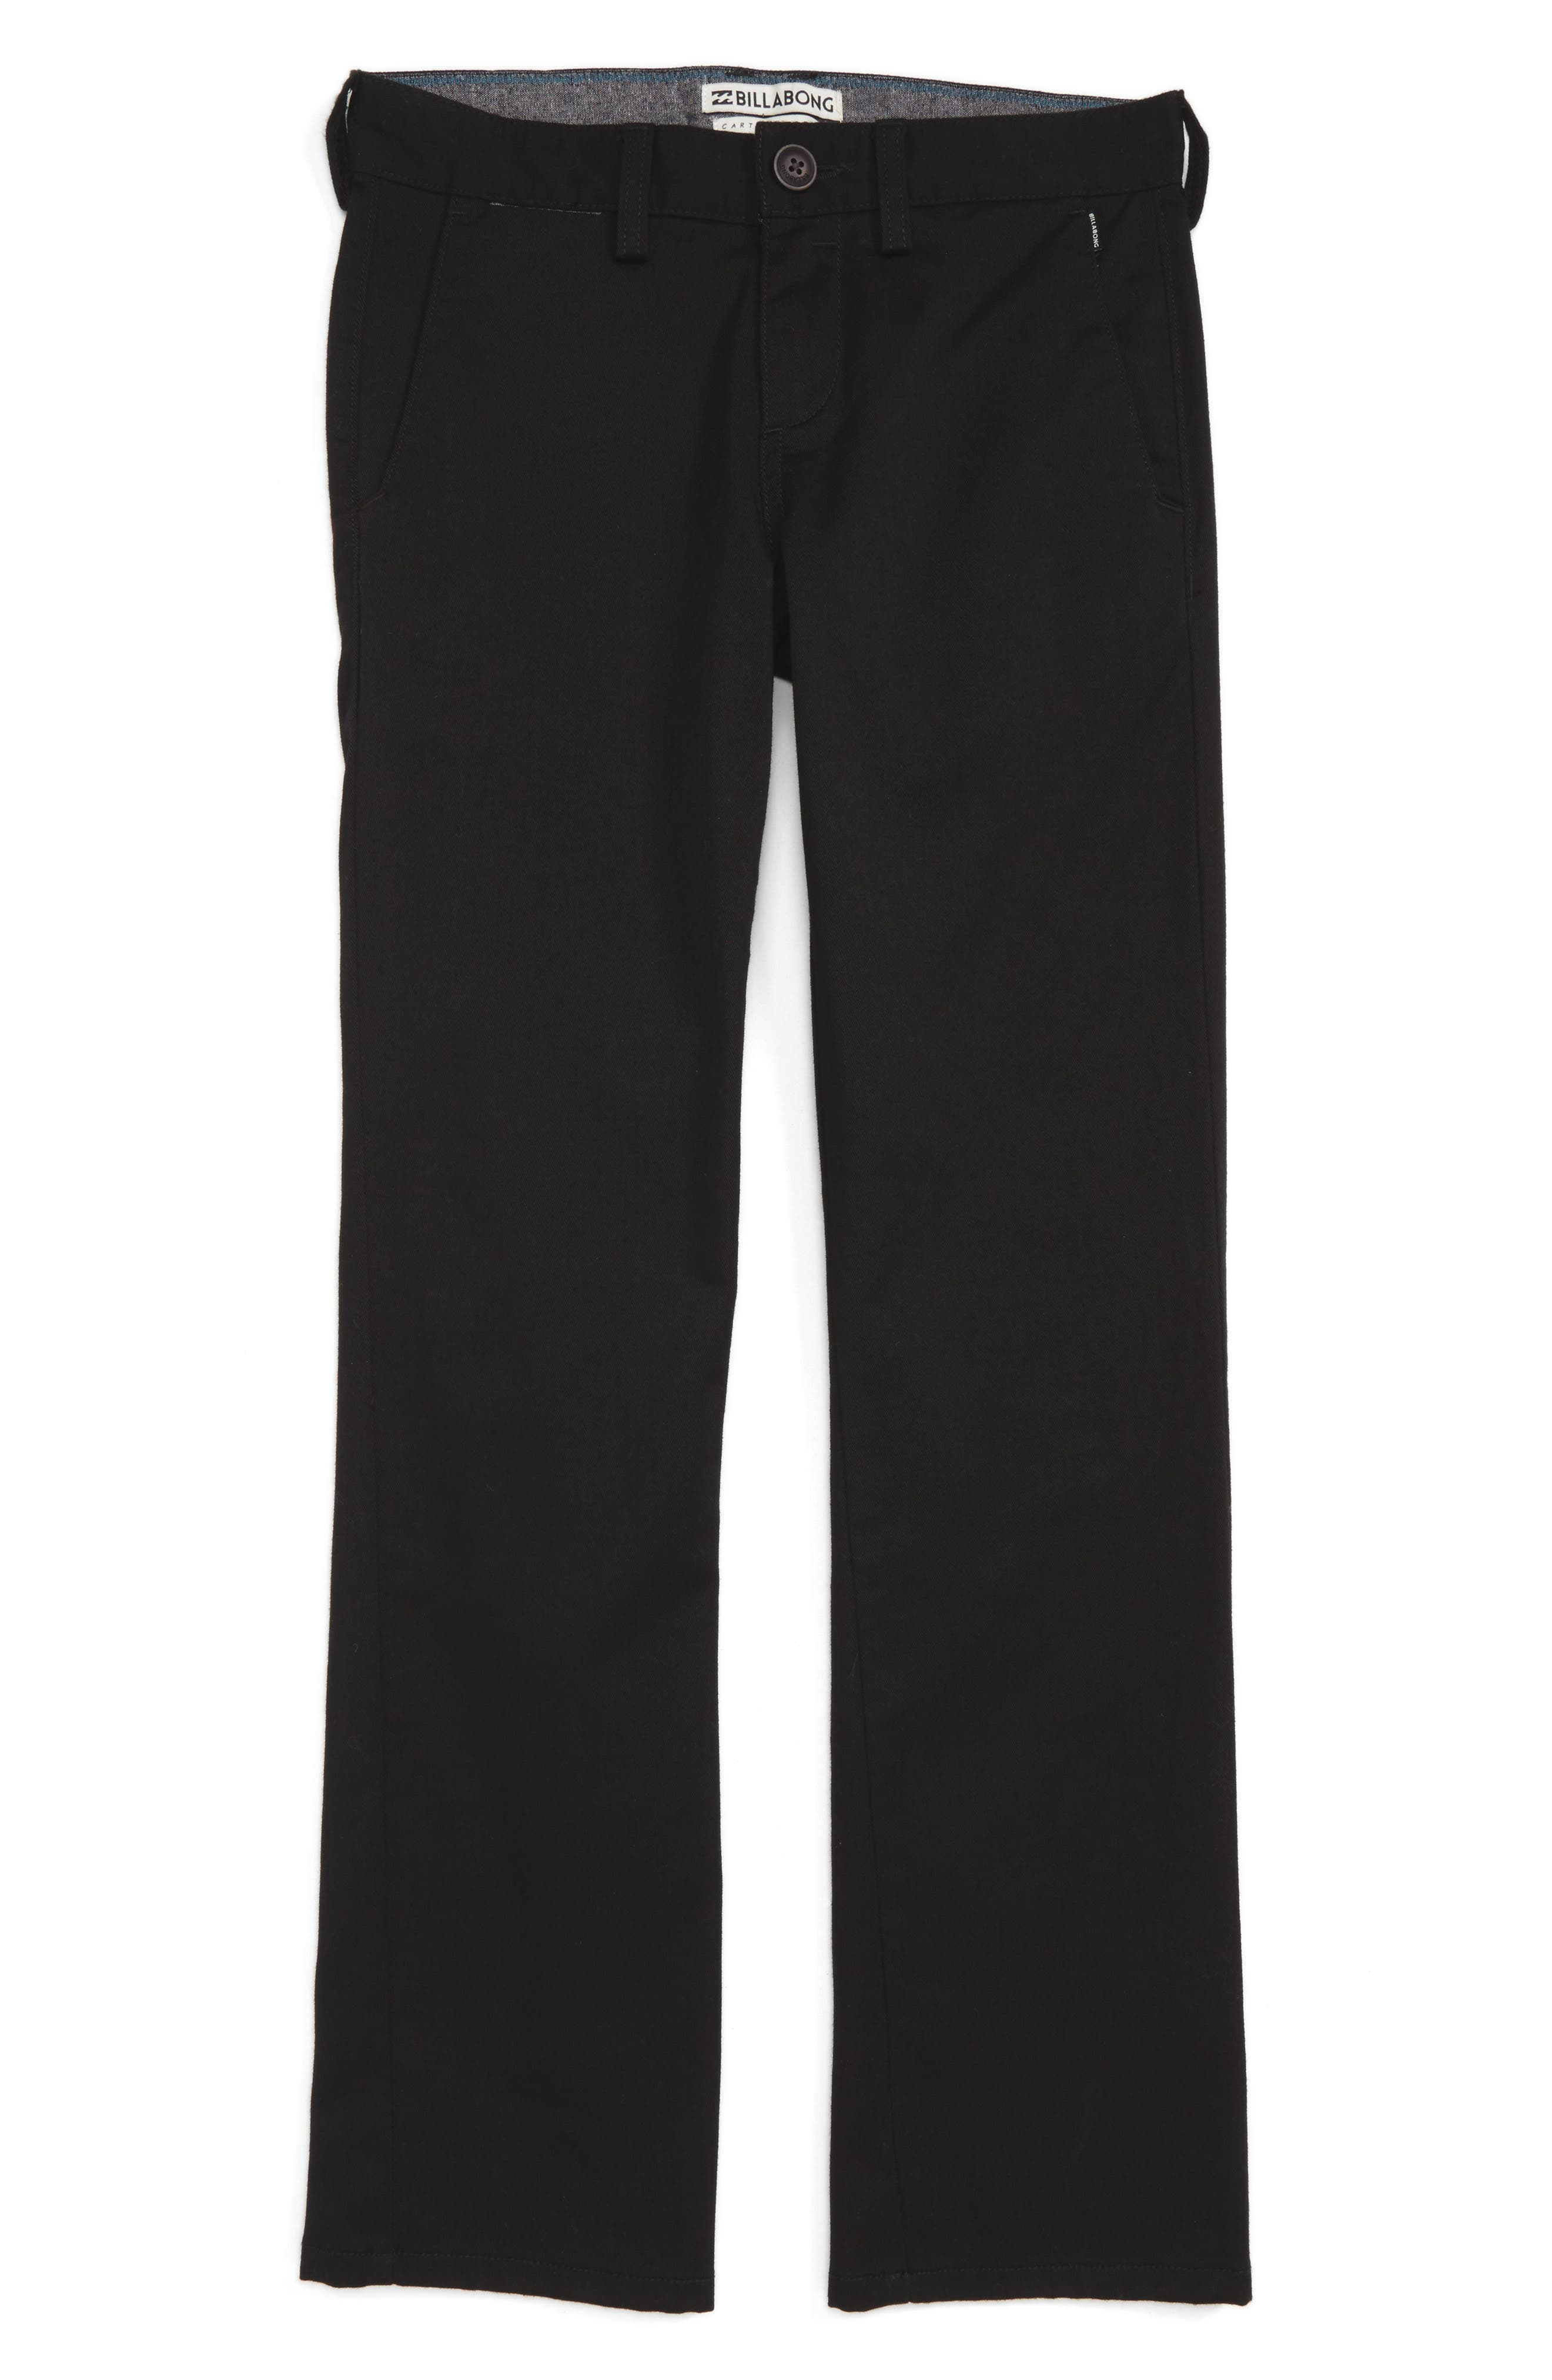 Alternate Image 1 Selected - Billabong Carter Stretch Twill Chinos (Toddler Boys, Little Boys & Big Boys)